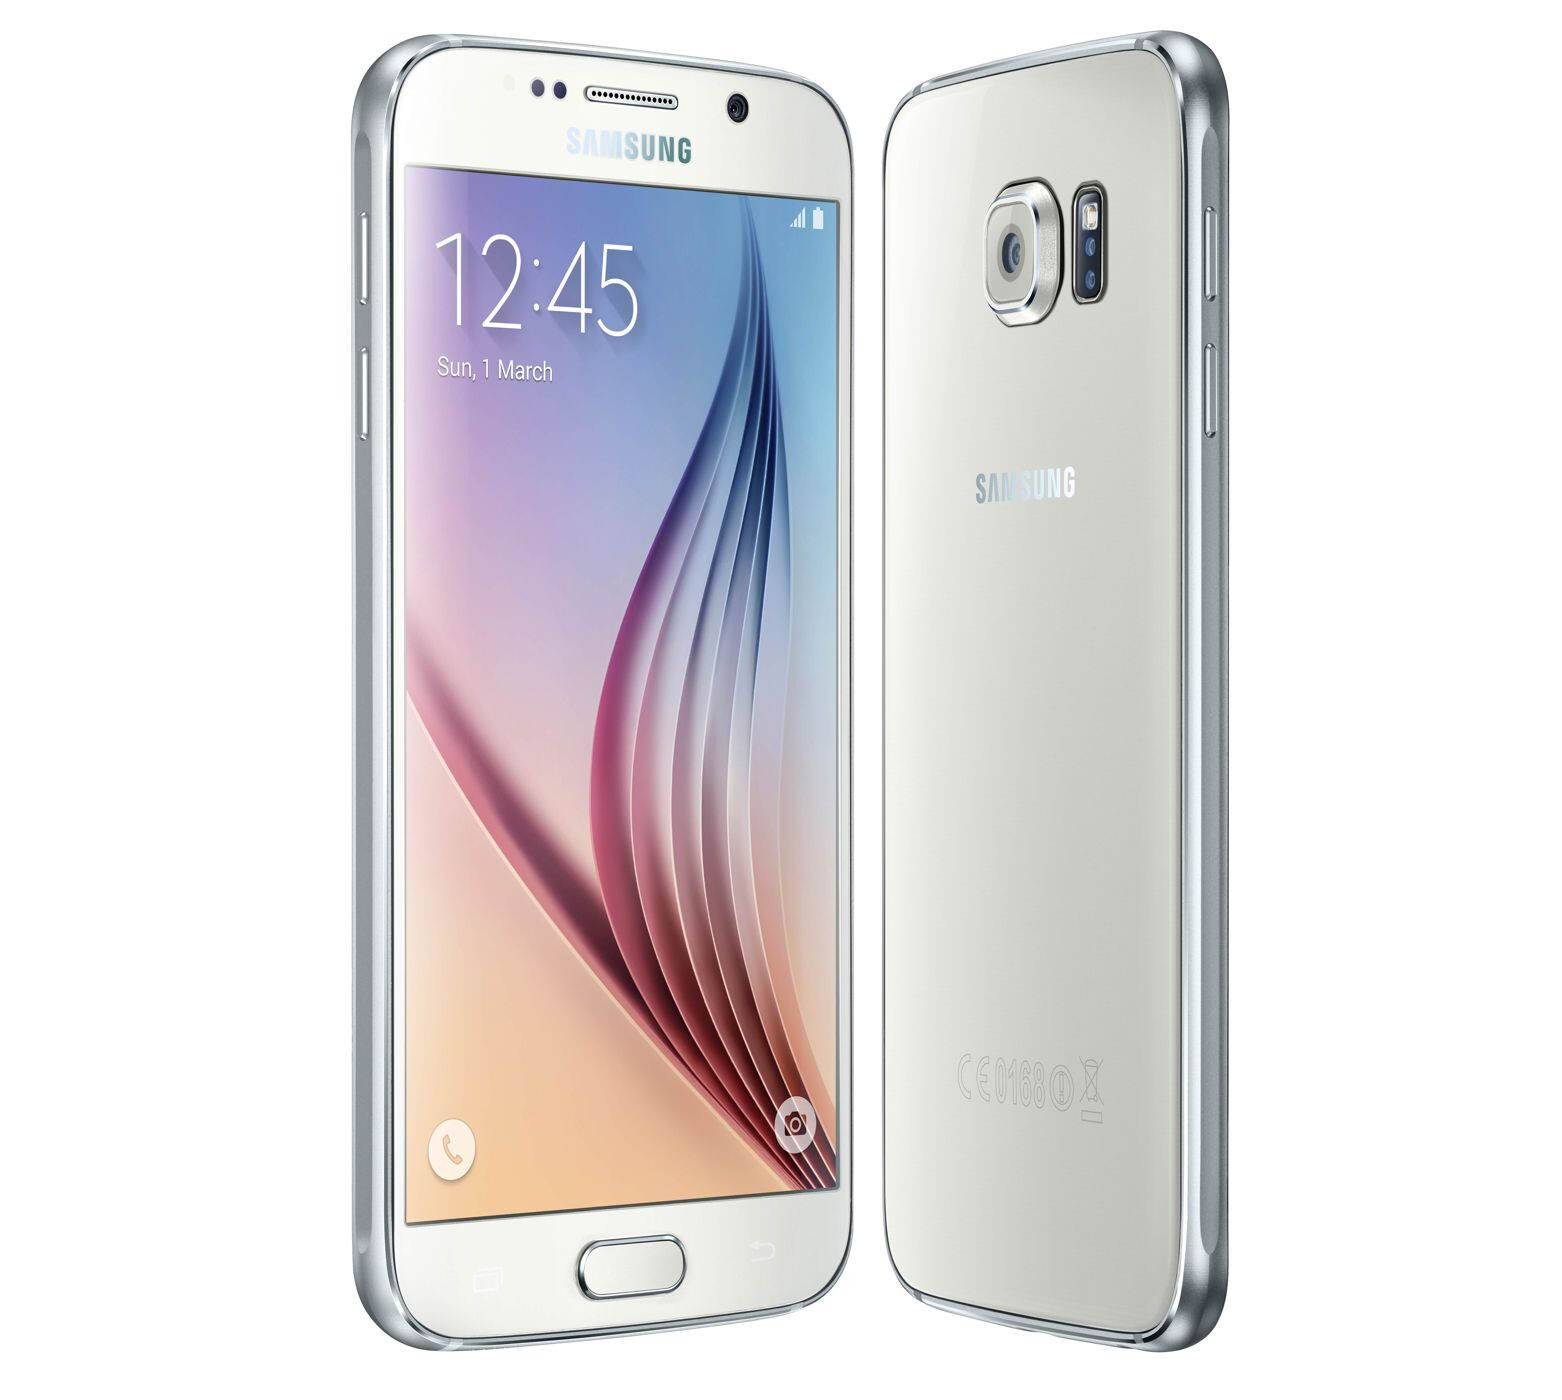 samsung galaxy s6 and s6 edge user manuals now available. Black Bedroom Furniture Sets. Home Design Ideas